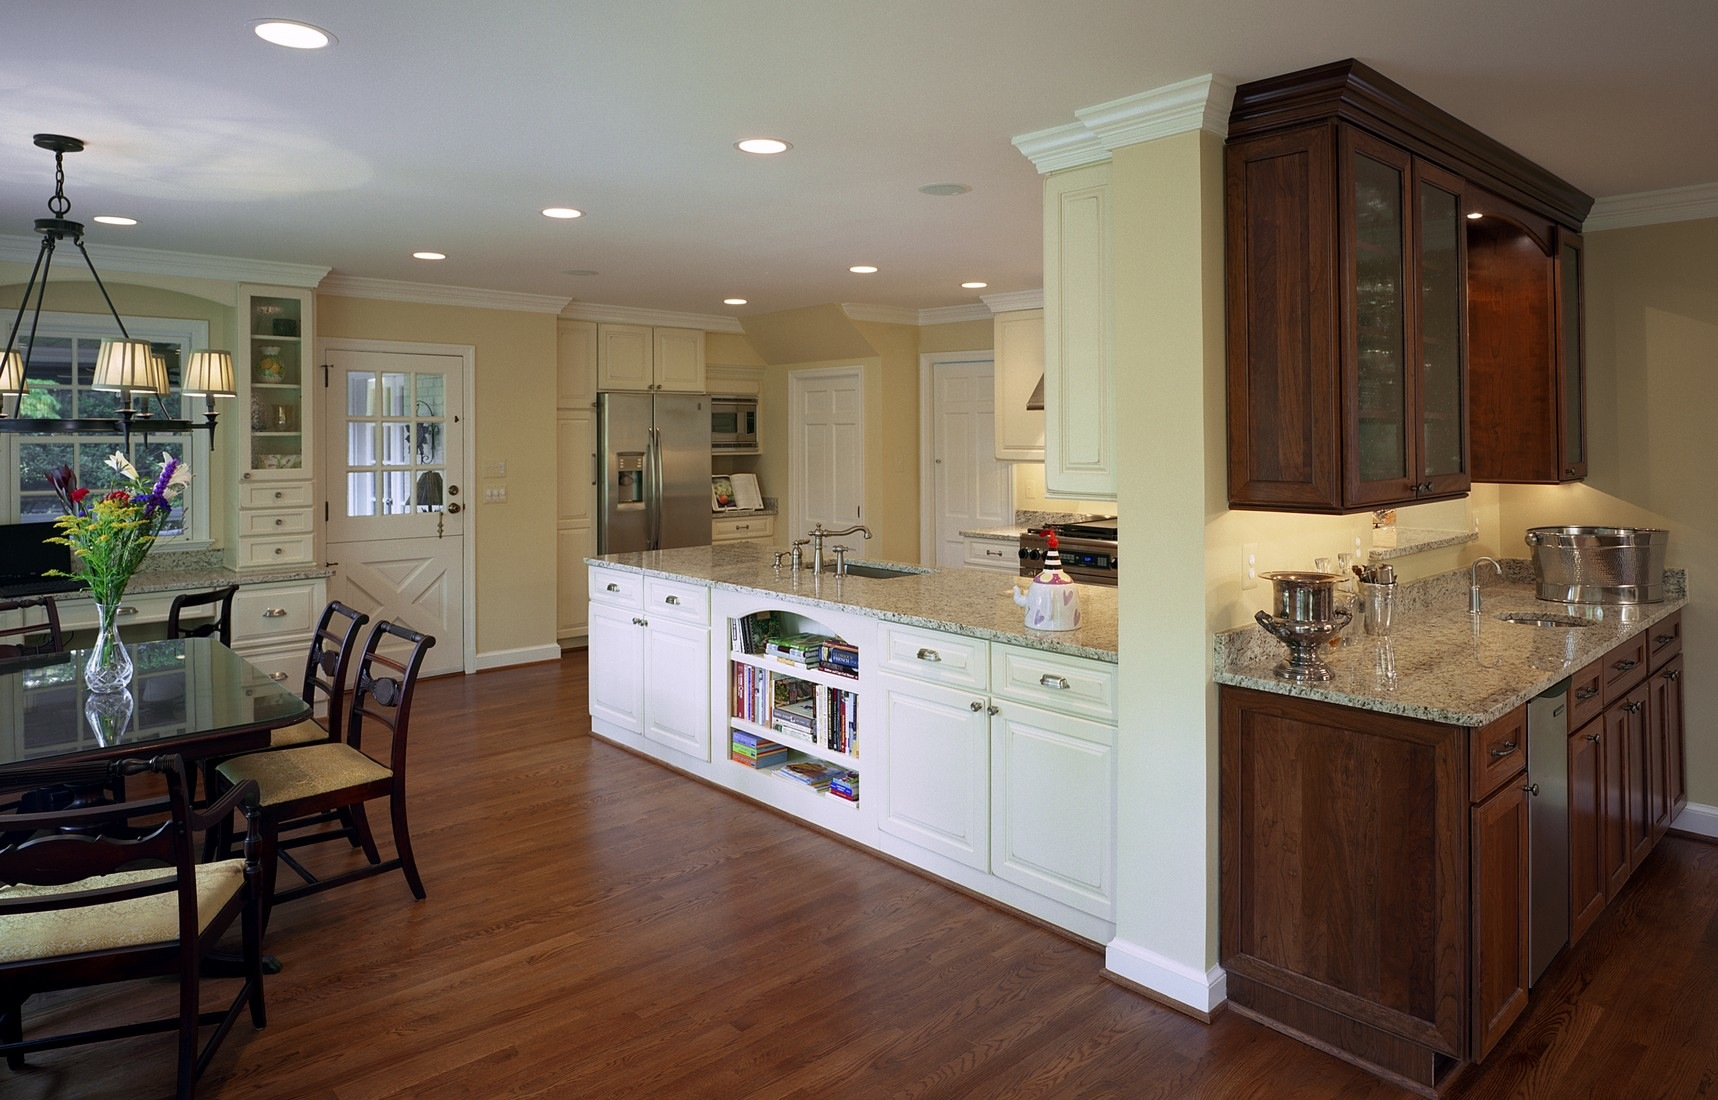 Chevy Chase Maryland Home Remodeling